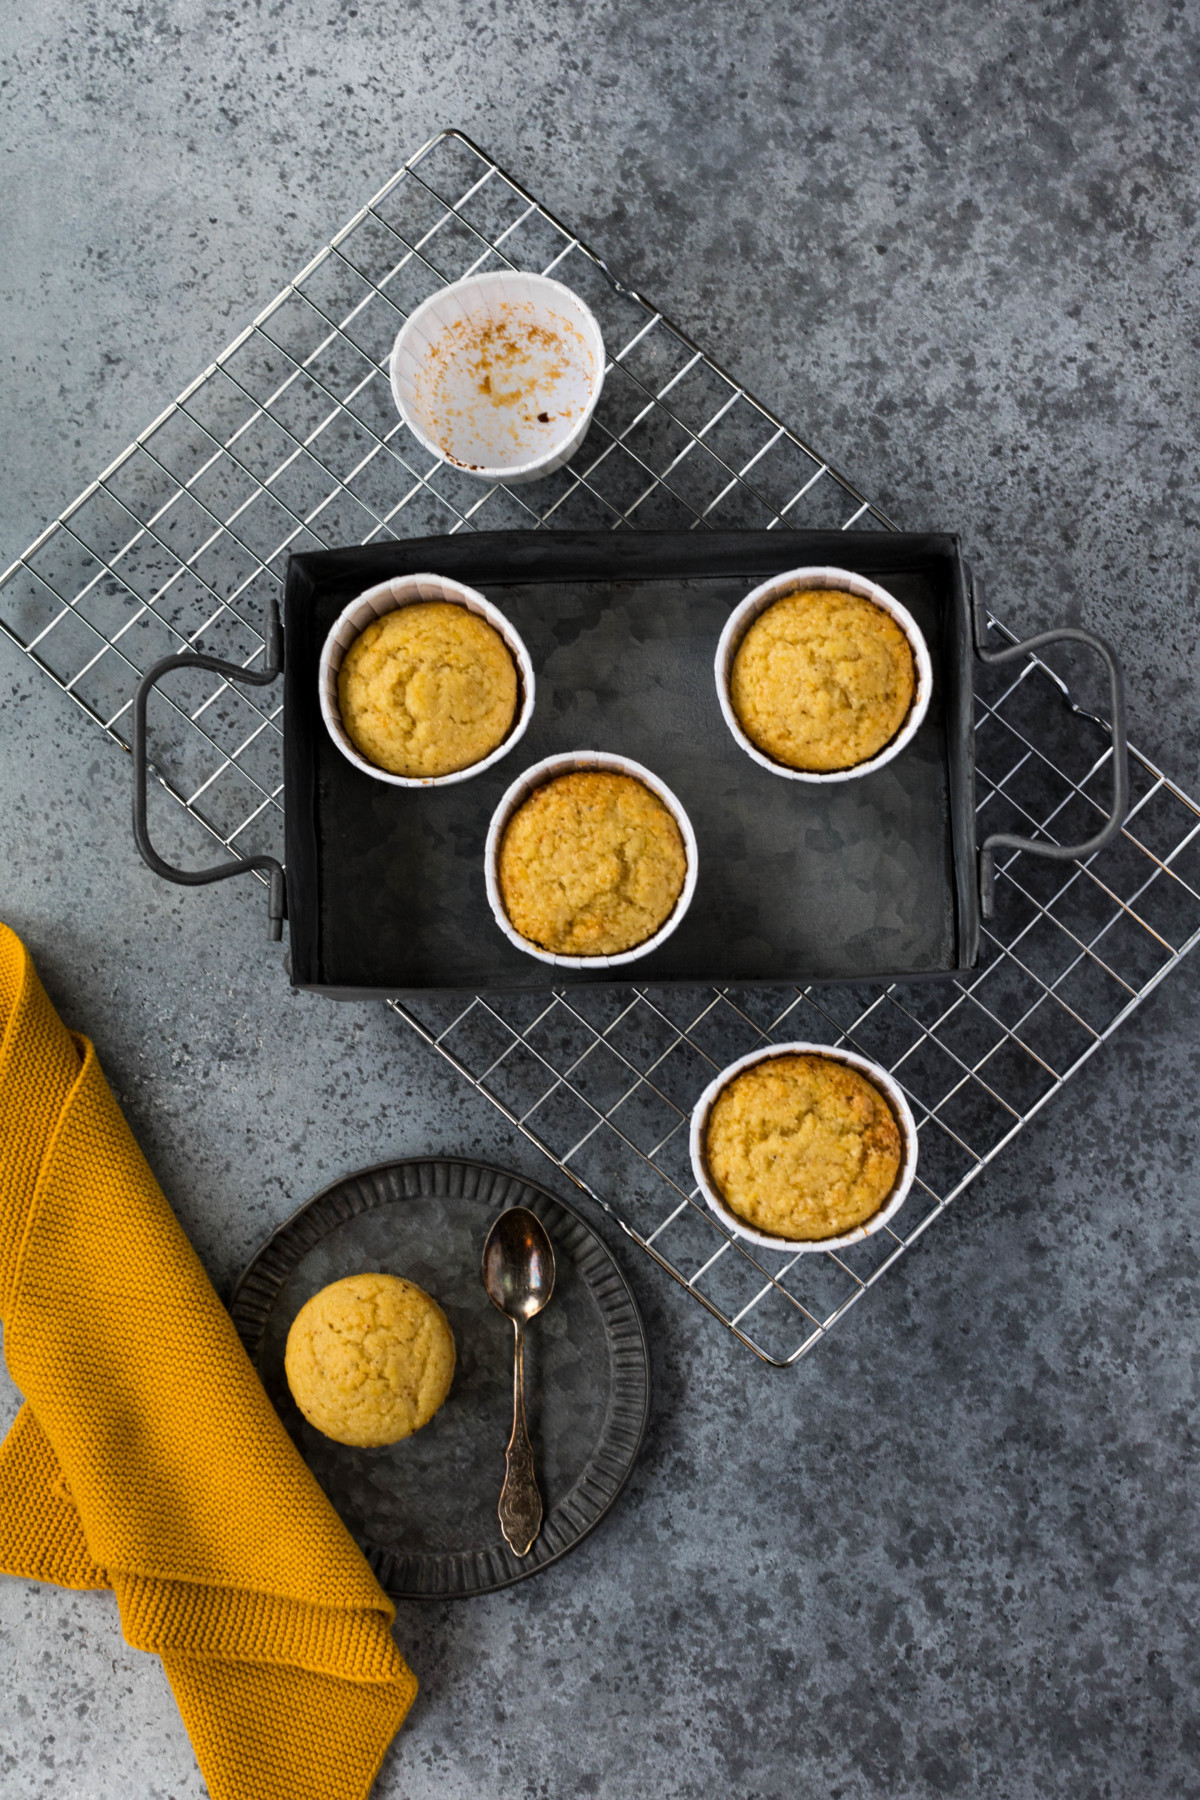 Zitronen-Mohn-Muffins // White Poppy Seed and Lemon Muffins by https://babyrockmyday.com/zitronen-mohn-muffins/